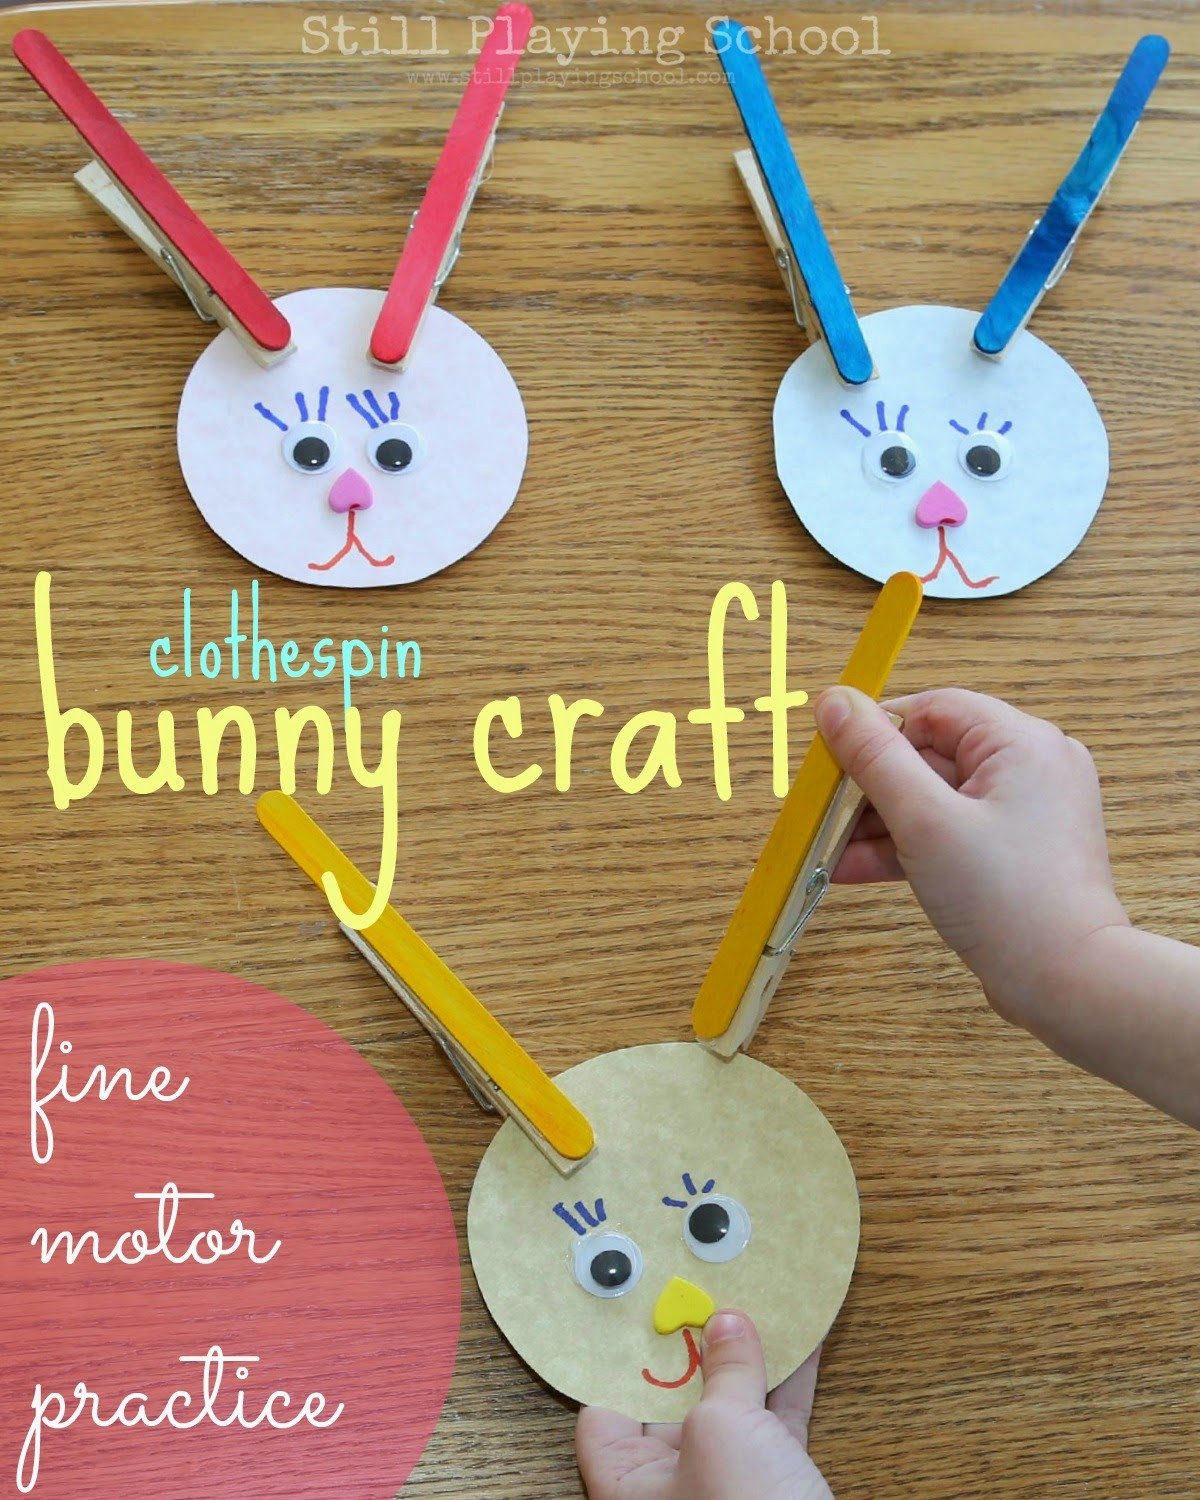 Best ideas about Simple Craft Ideas . Save or Pin 11 Easy Craft Ideas For Kids That Are Perfect for Parties Now.